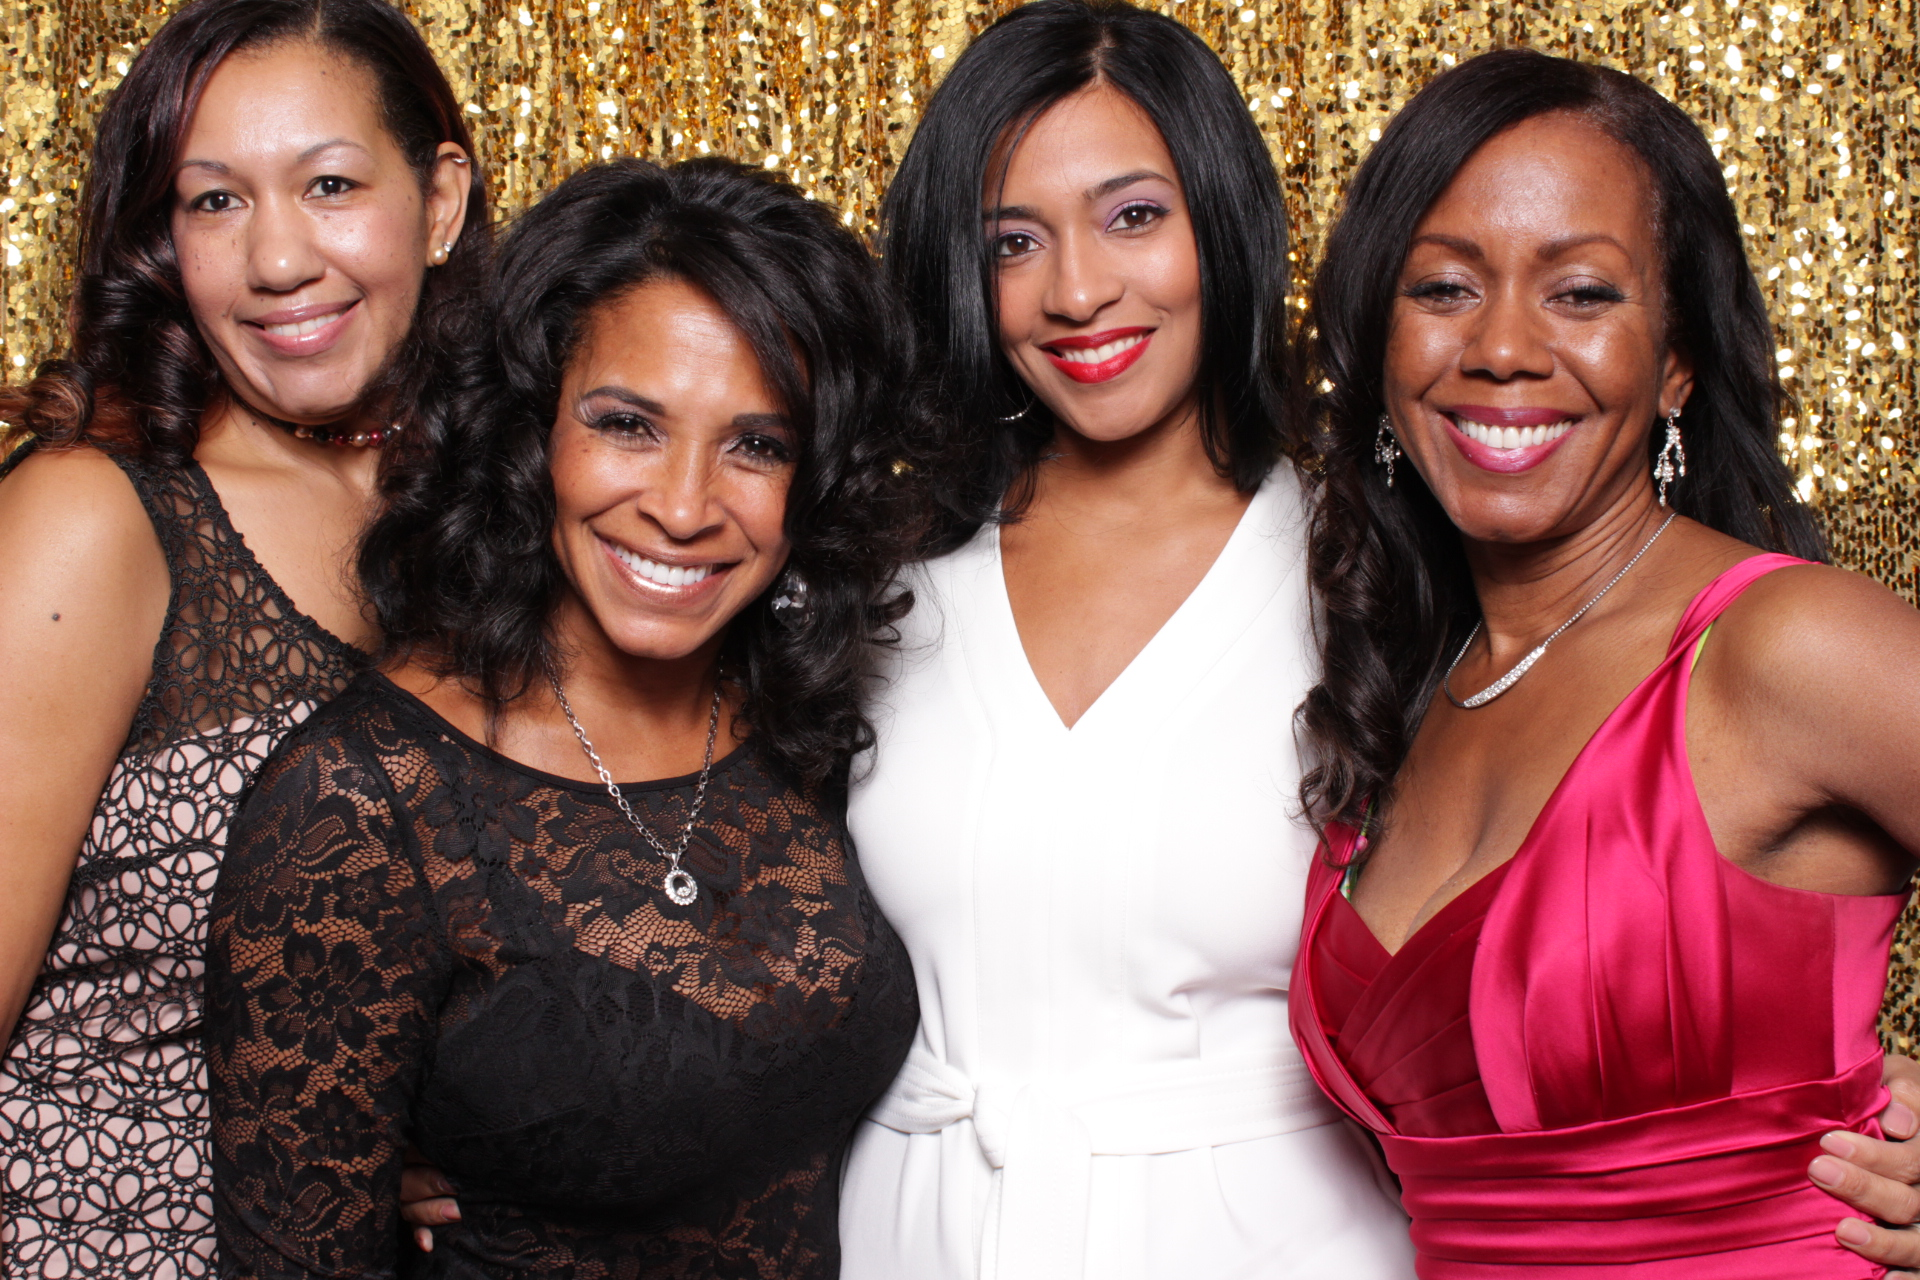 KNOCK OUT ABUSE GALA | HOT PINK PHOTO BOOTH